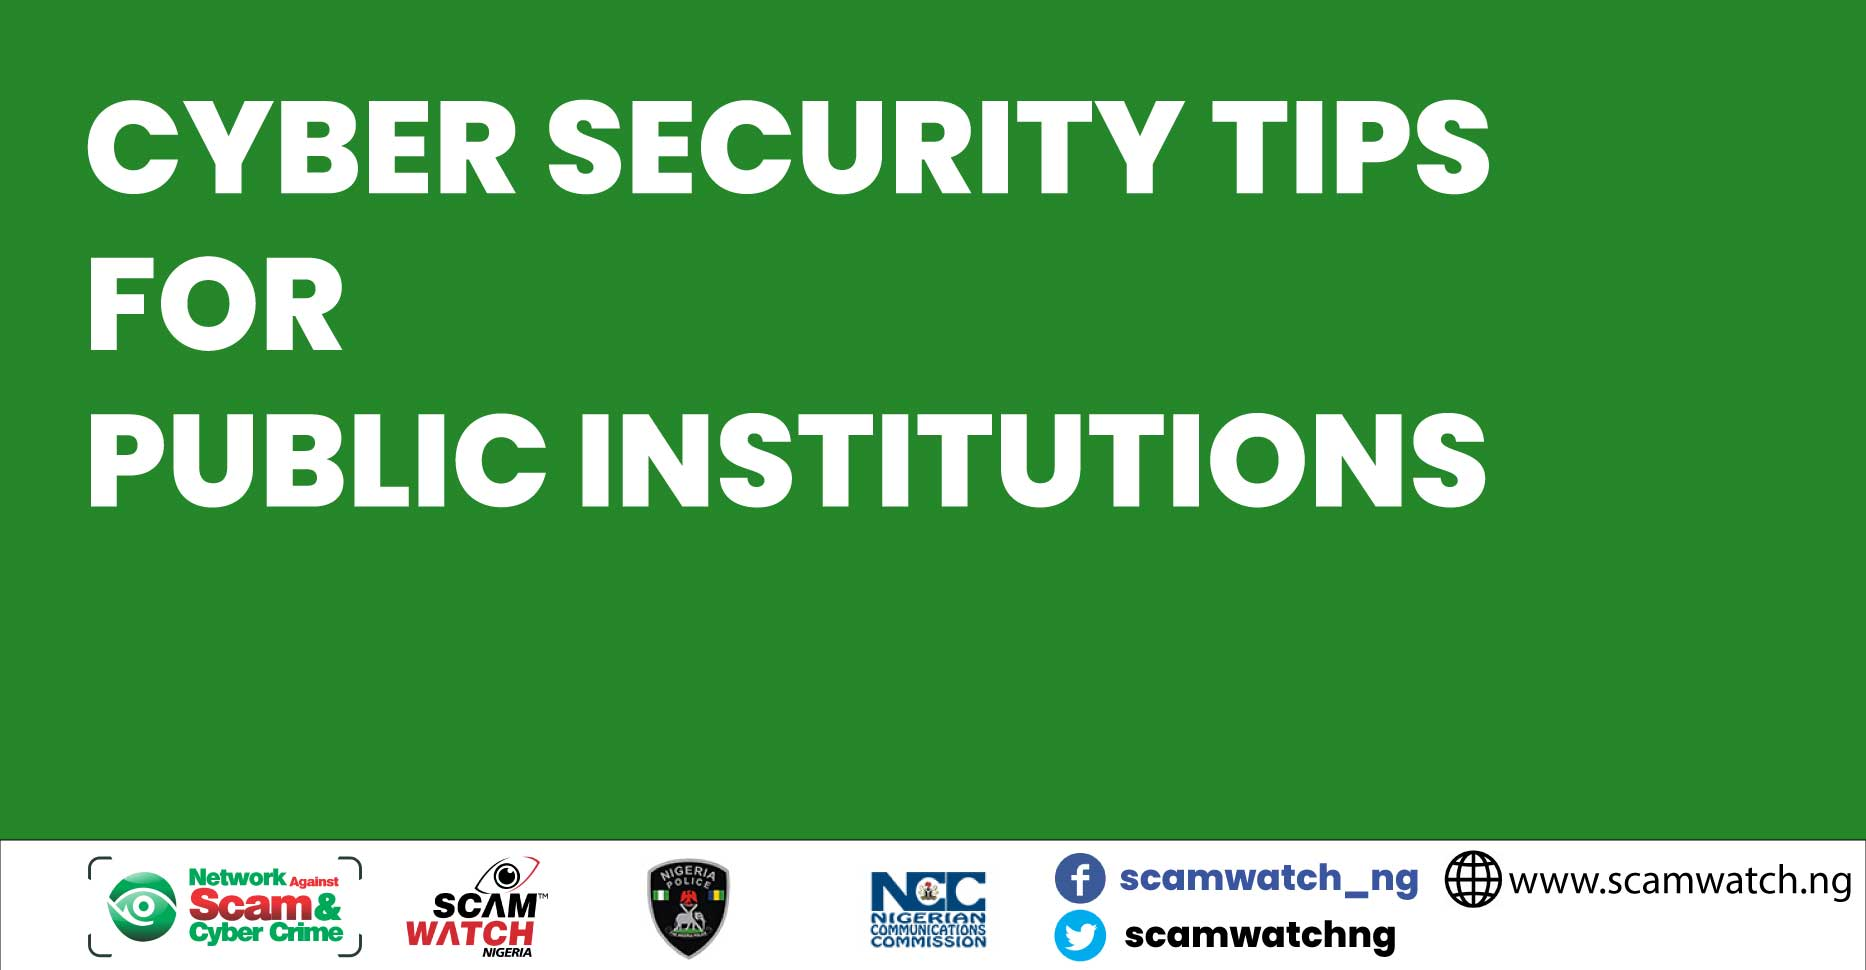 Cyber security awareness tips for public institutions